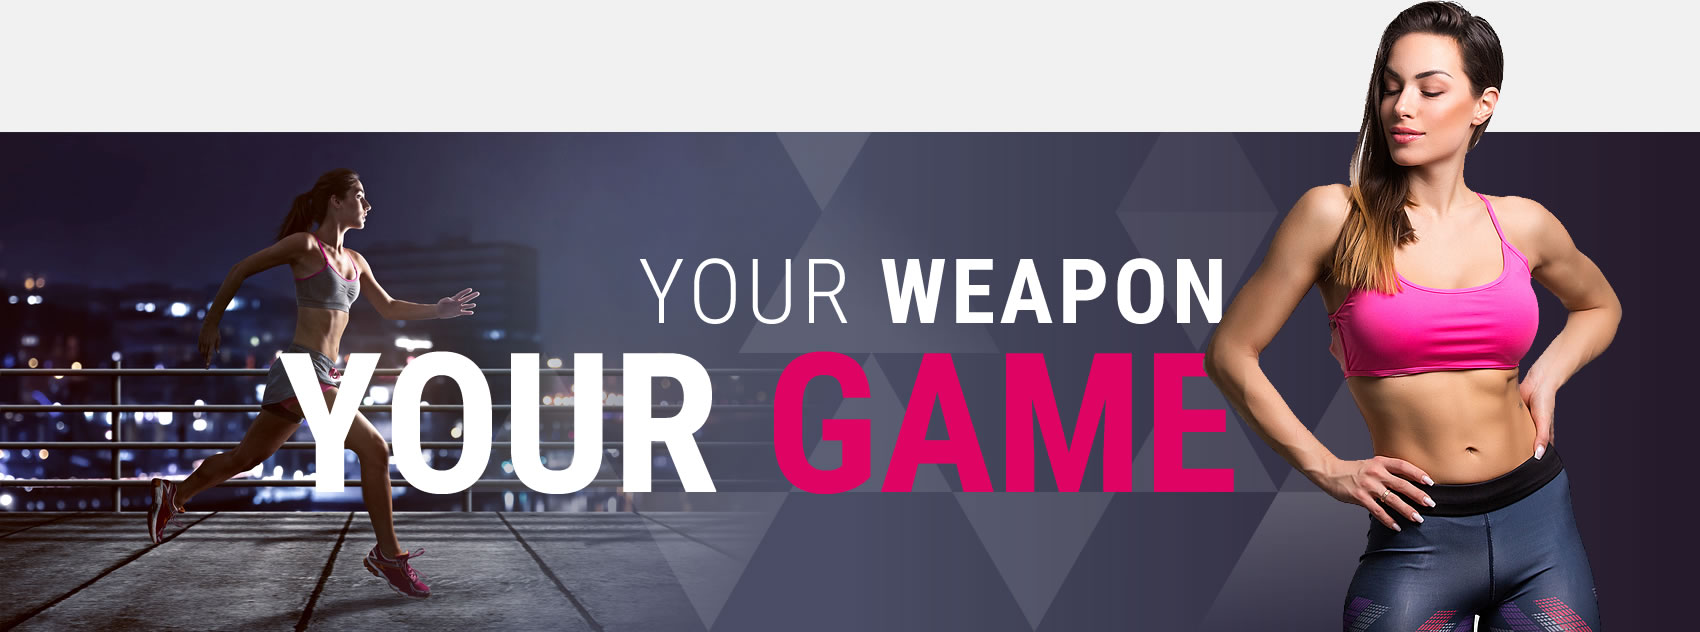 Your weapon your game